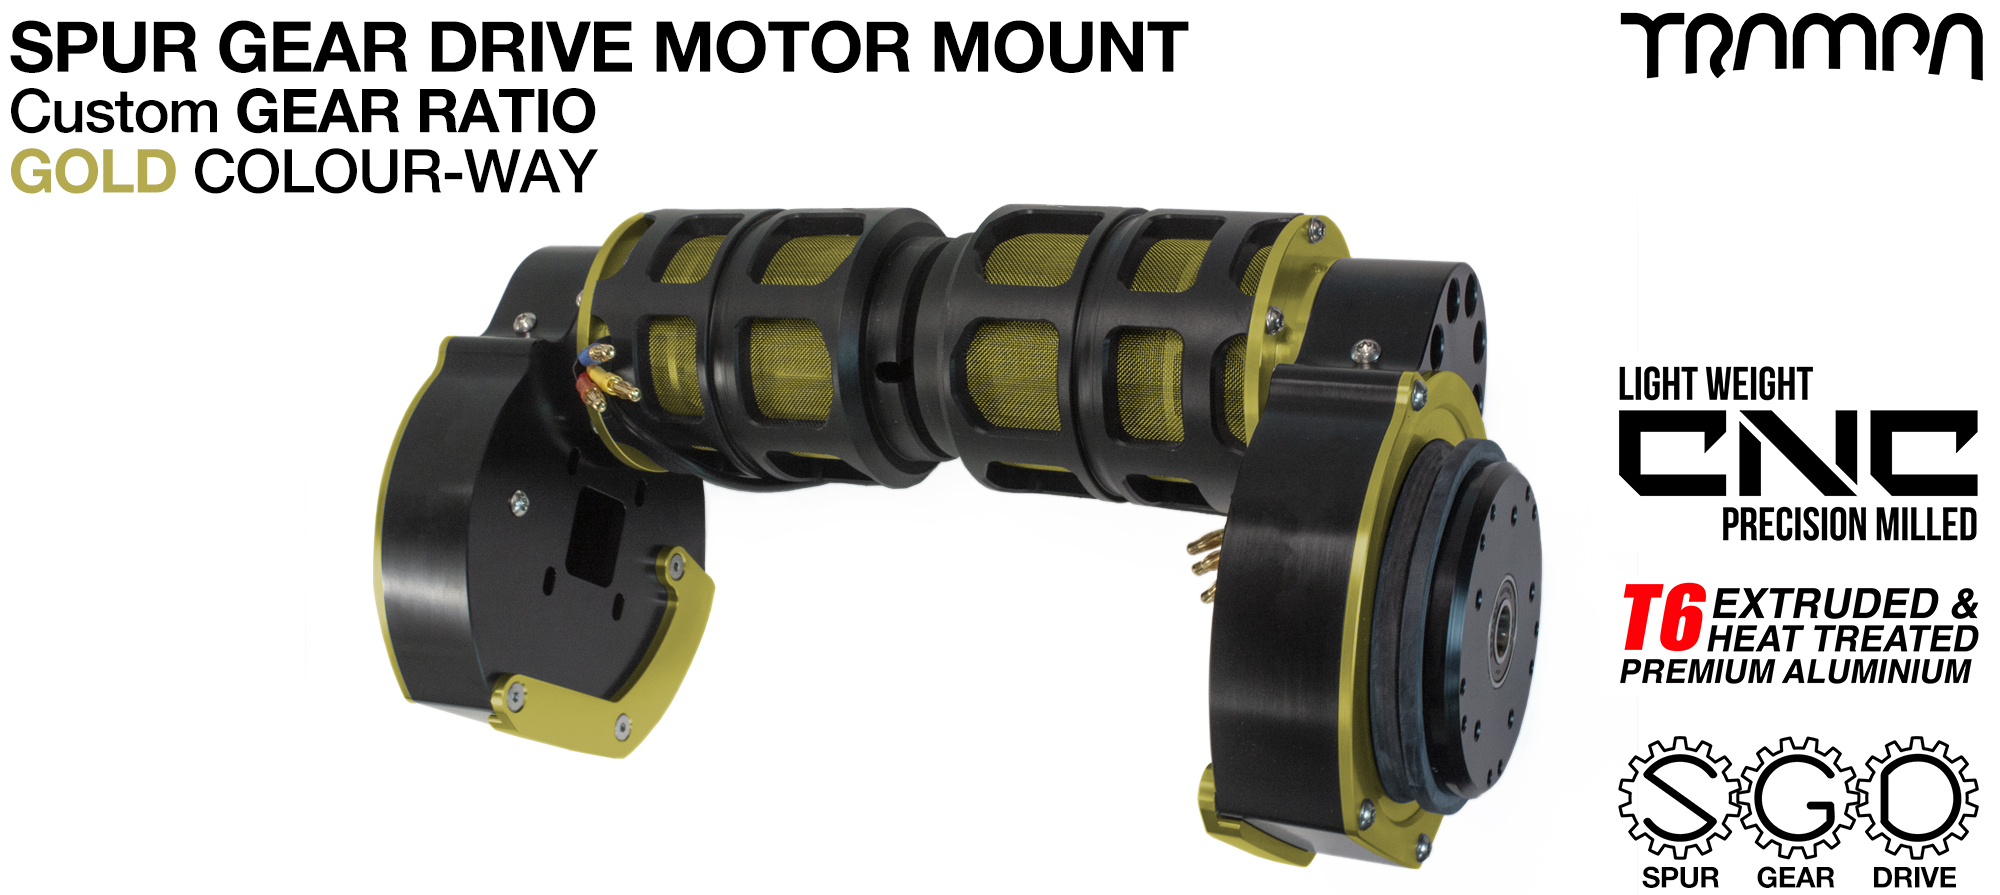 Mountainboard Spur Gear Drive TWIN Motor Mount - GOLD